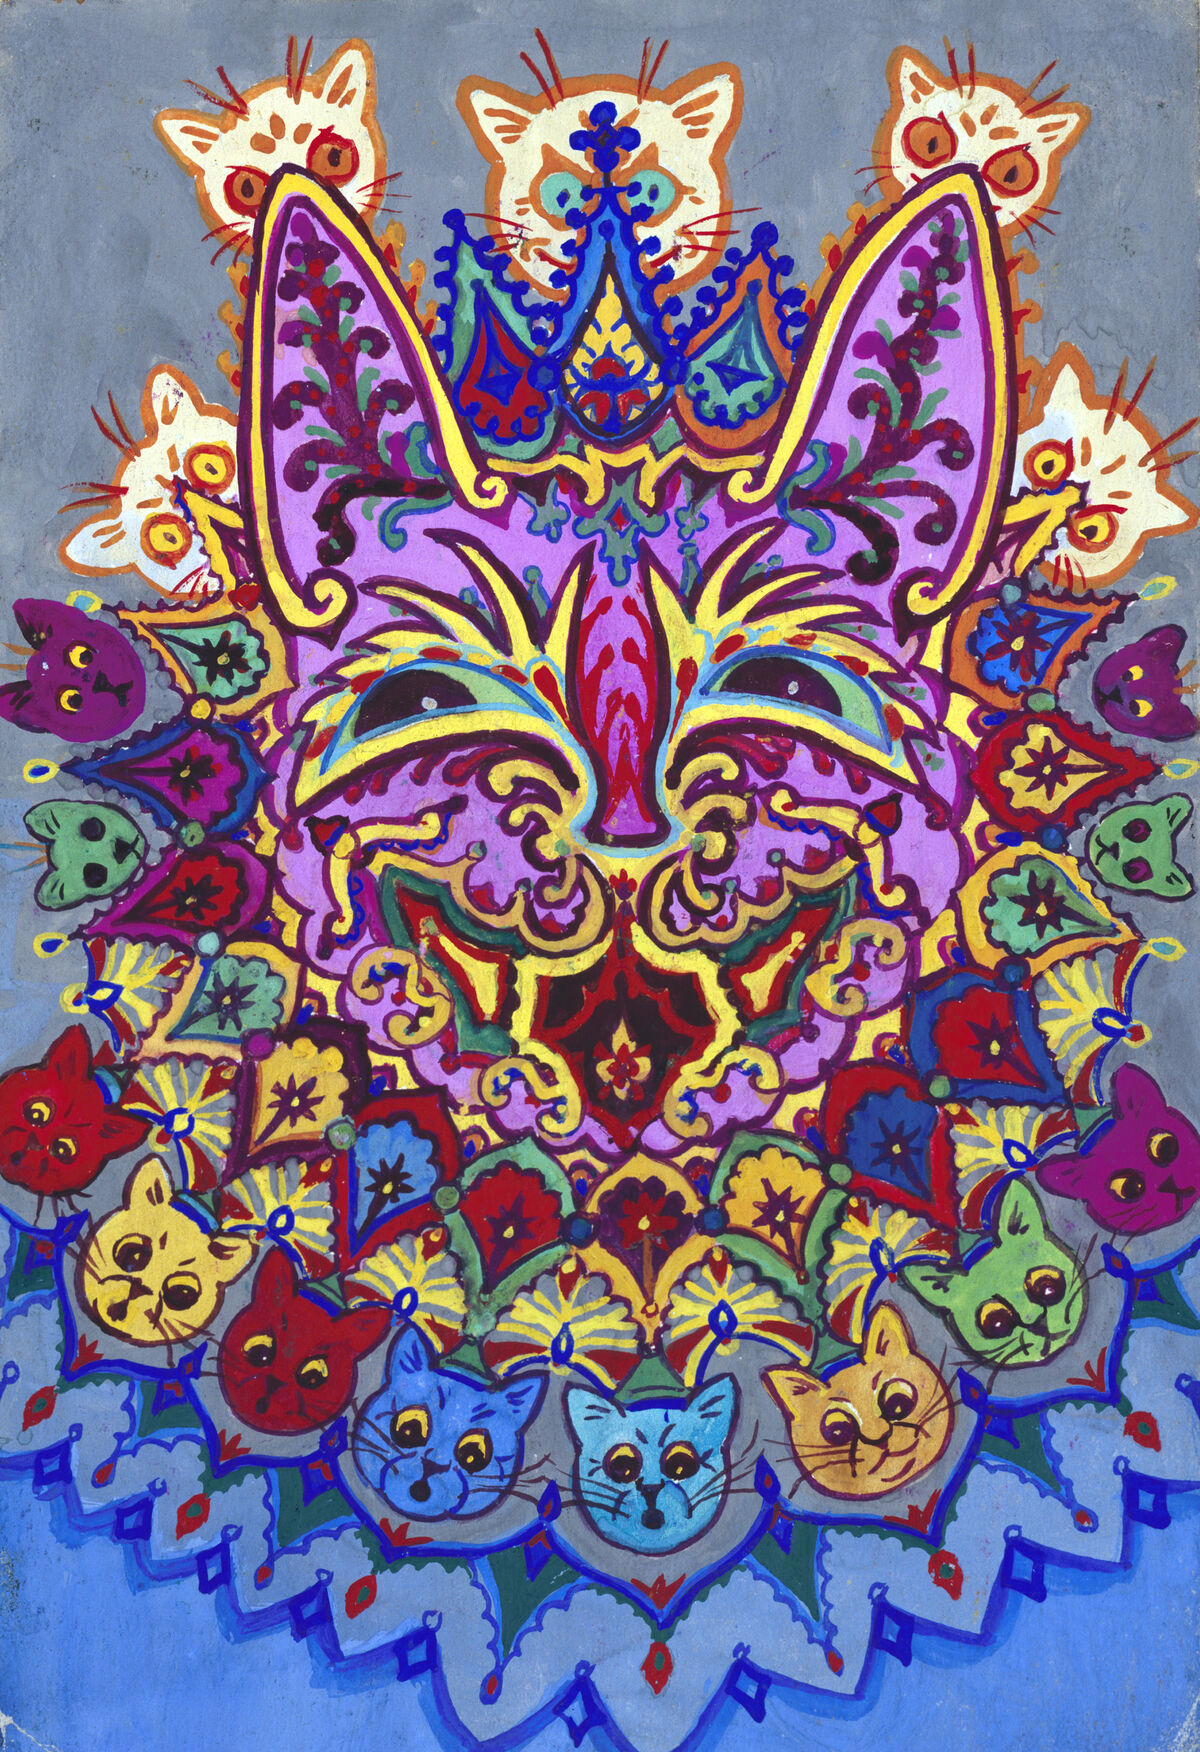 Louis Wain, Cat with Cat Necklace. Courtesy of Chris Beetles Ltd.